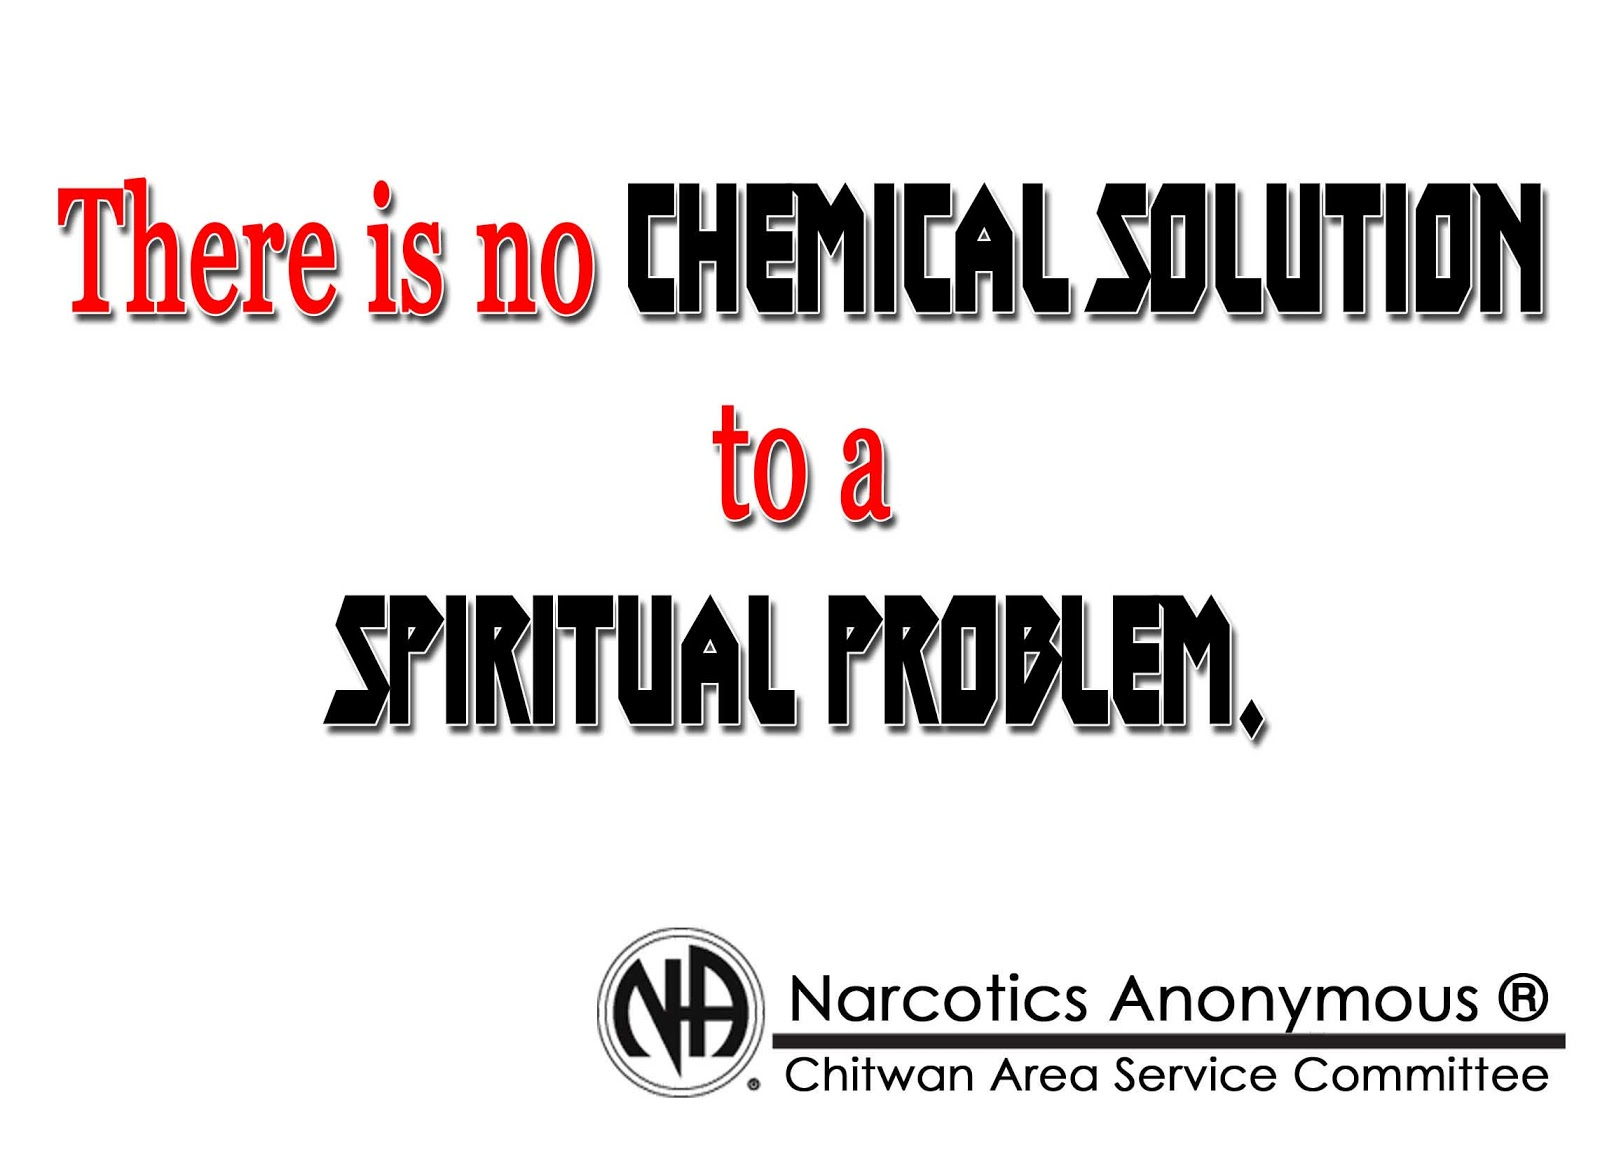 chitwan area service committee of narcotics anonymous